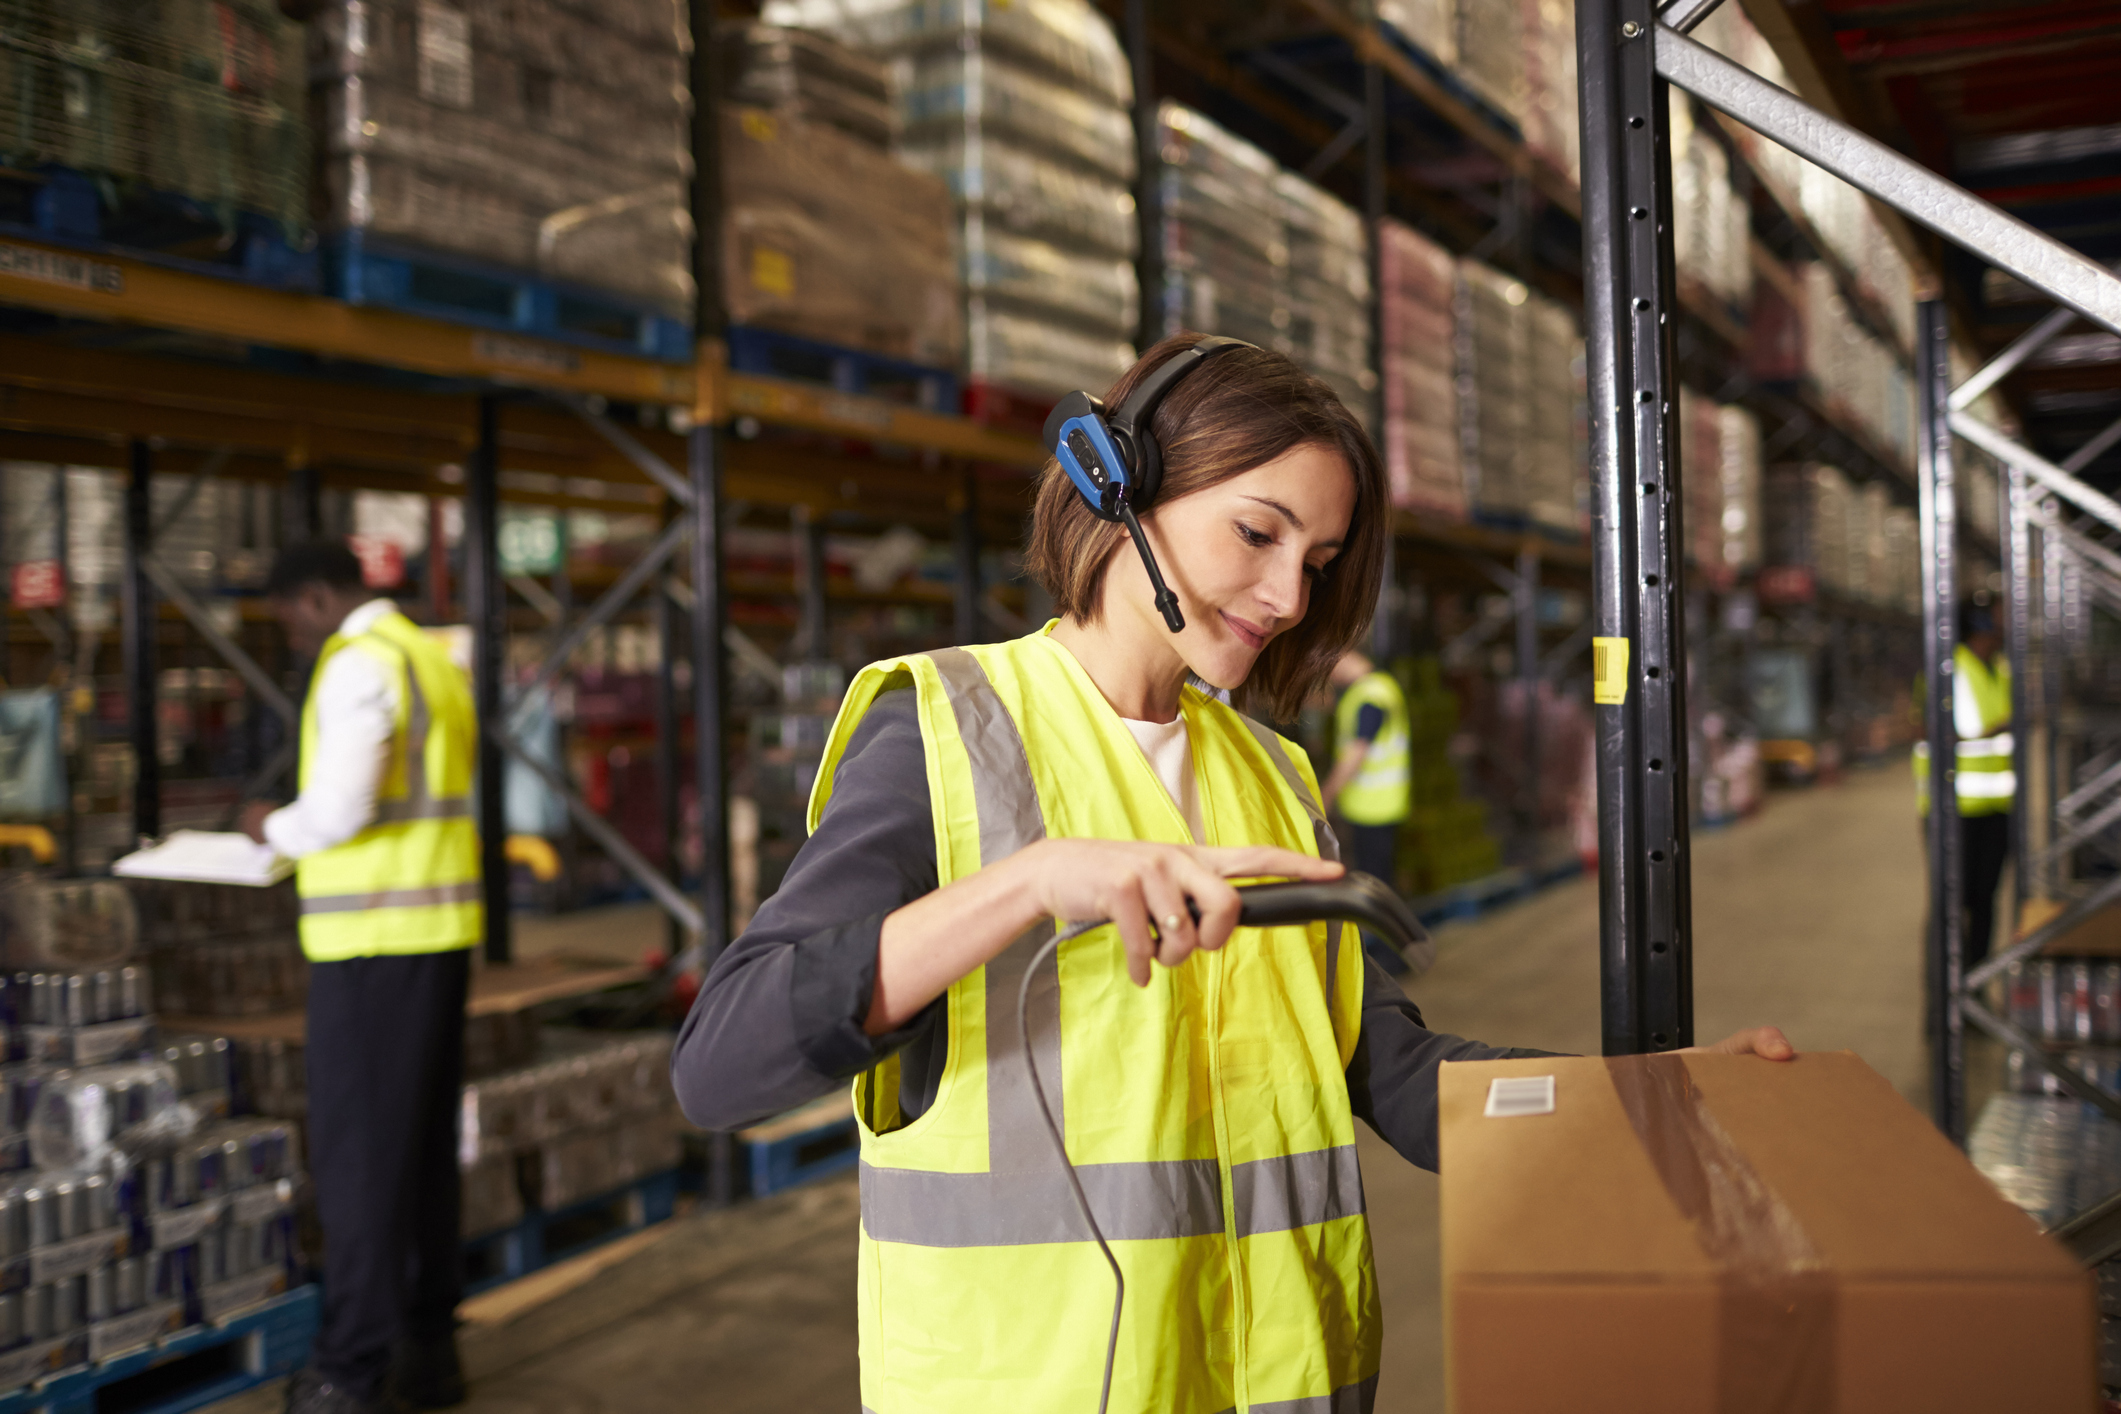 All items and completed parcels are scanned for complete accuracy and accountability